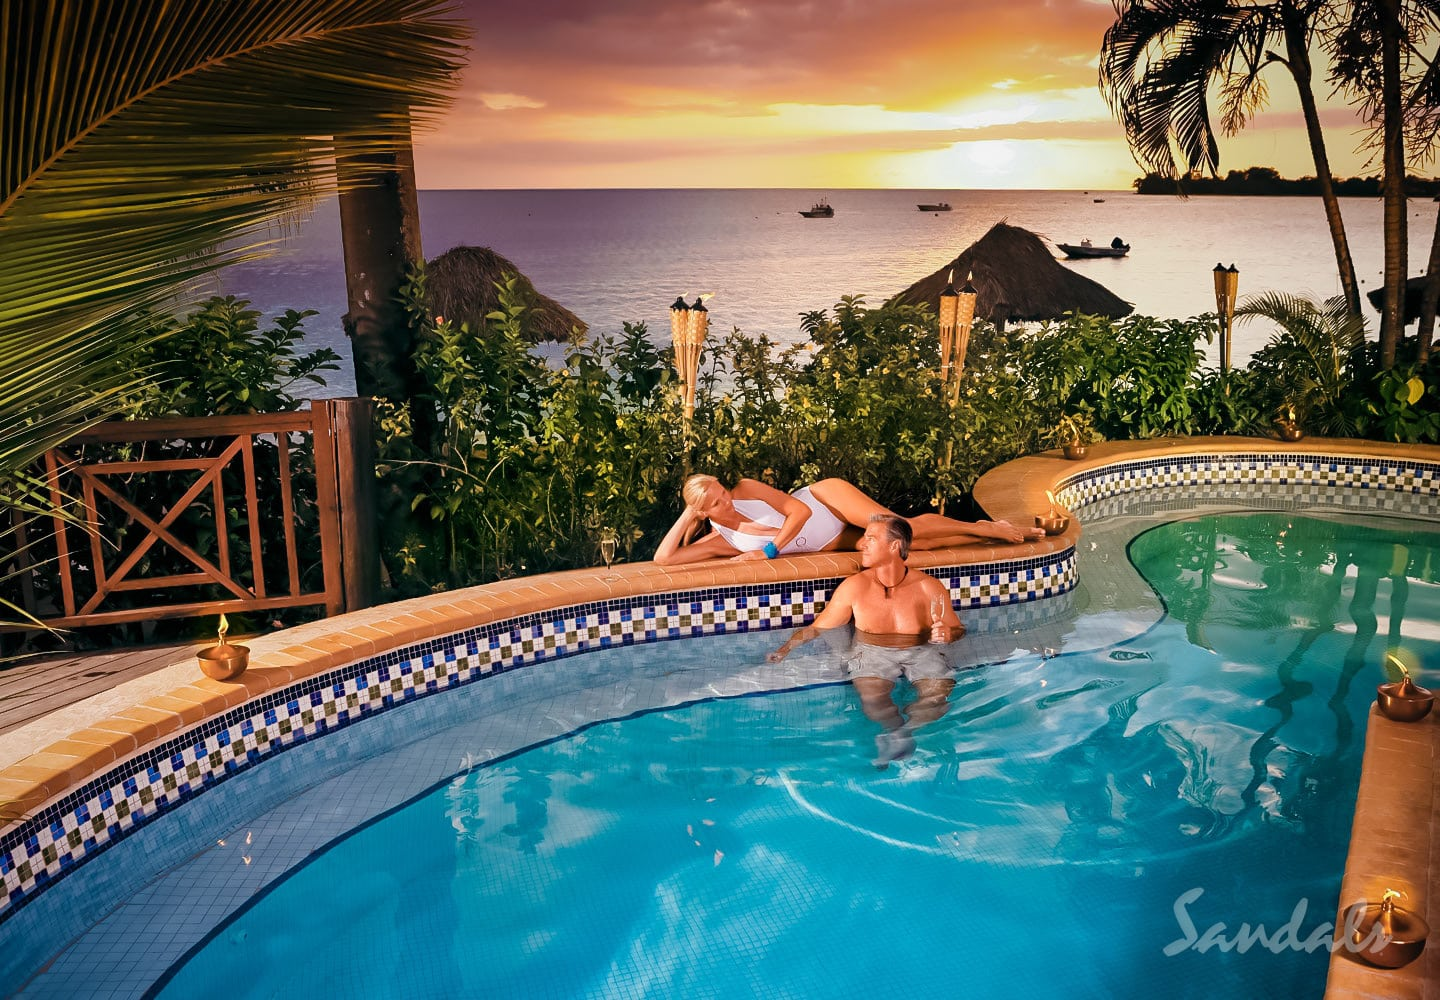 couple in their private pool at sunset, ocean and resort in the back at the Sandals Negril beach resort in Jamaica, perfect location for all inclusive vacations adults only, planned by Southern Travel Agency Augusta, GA